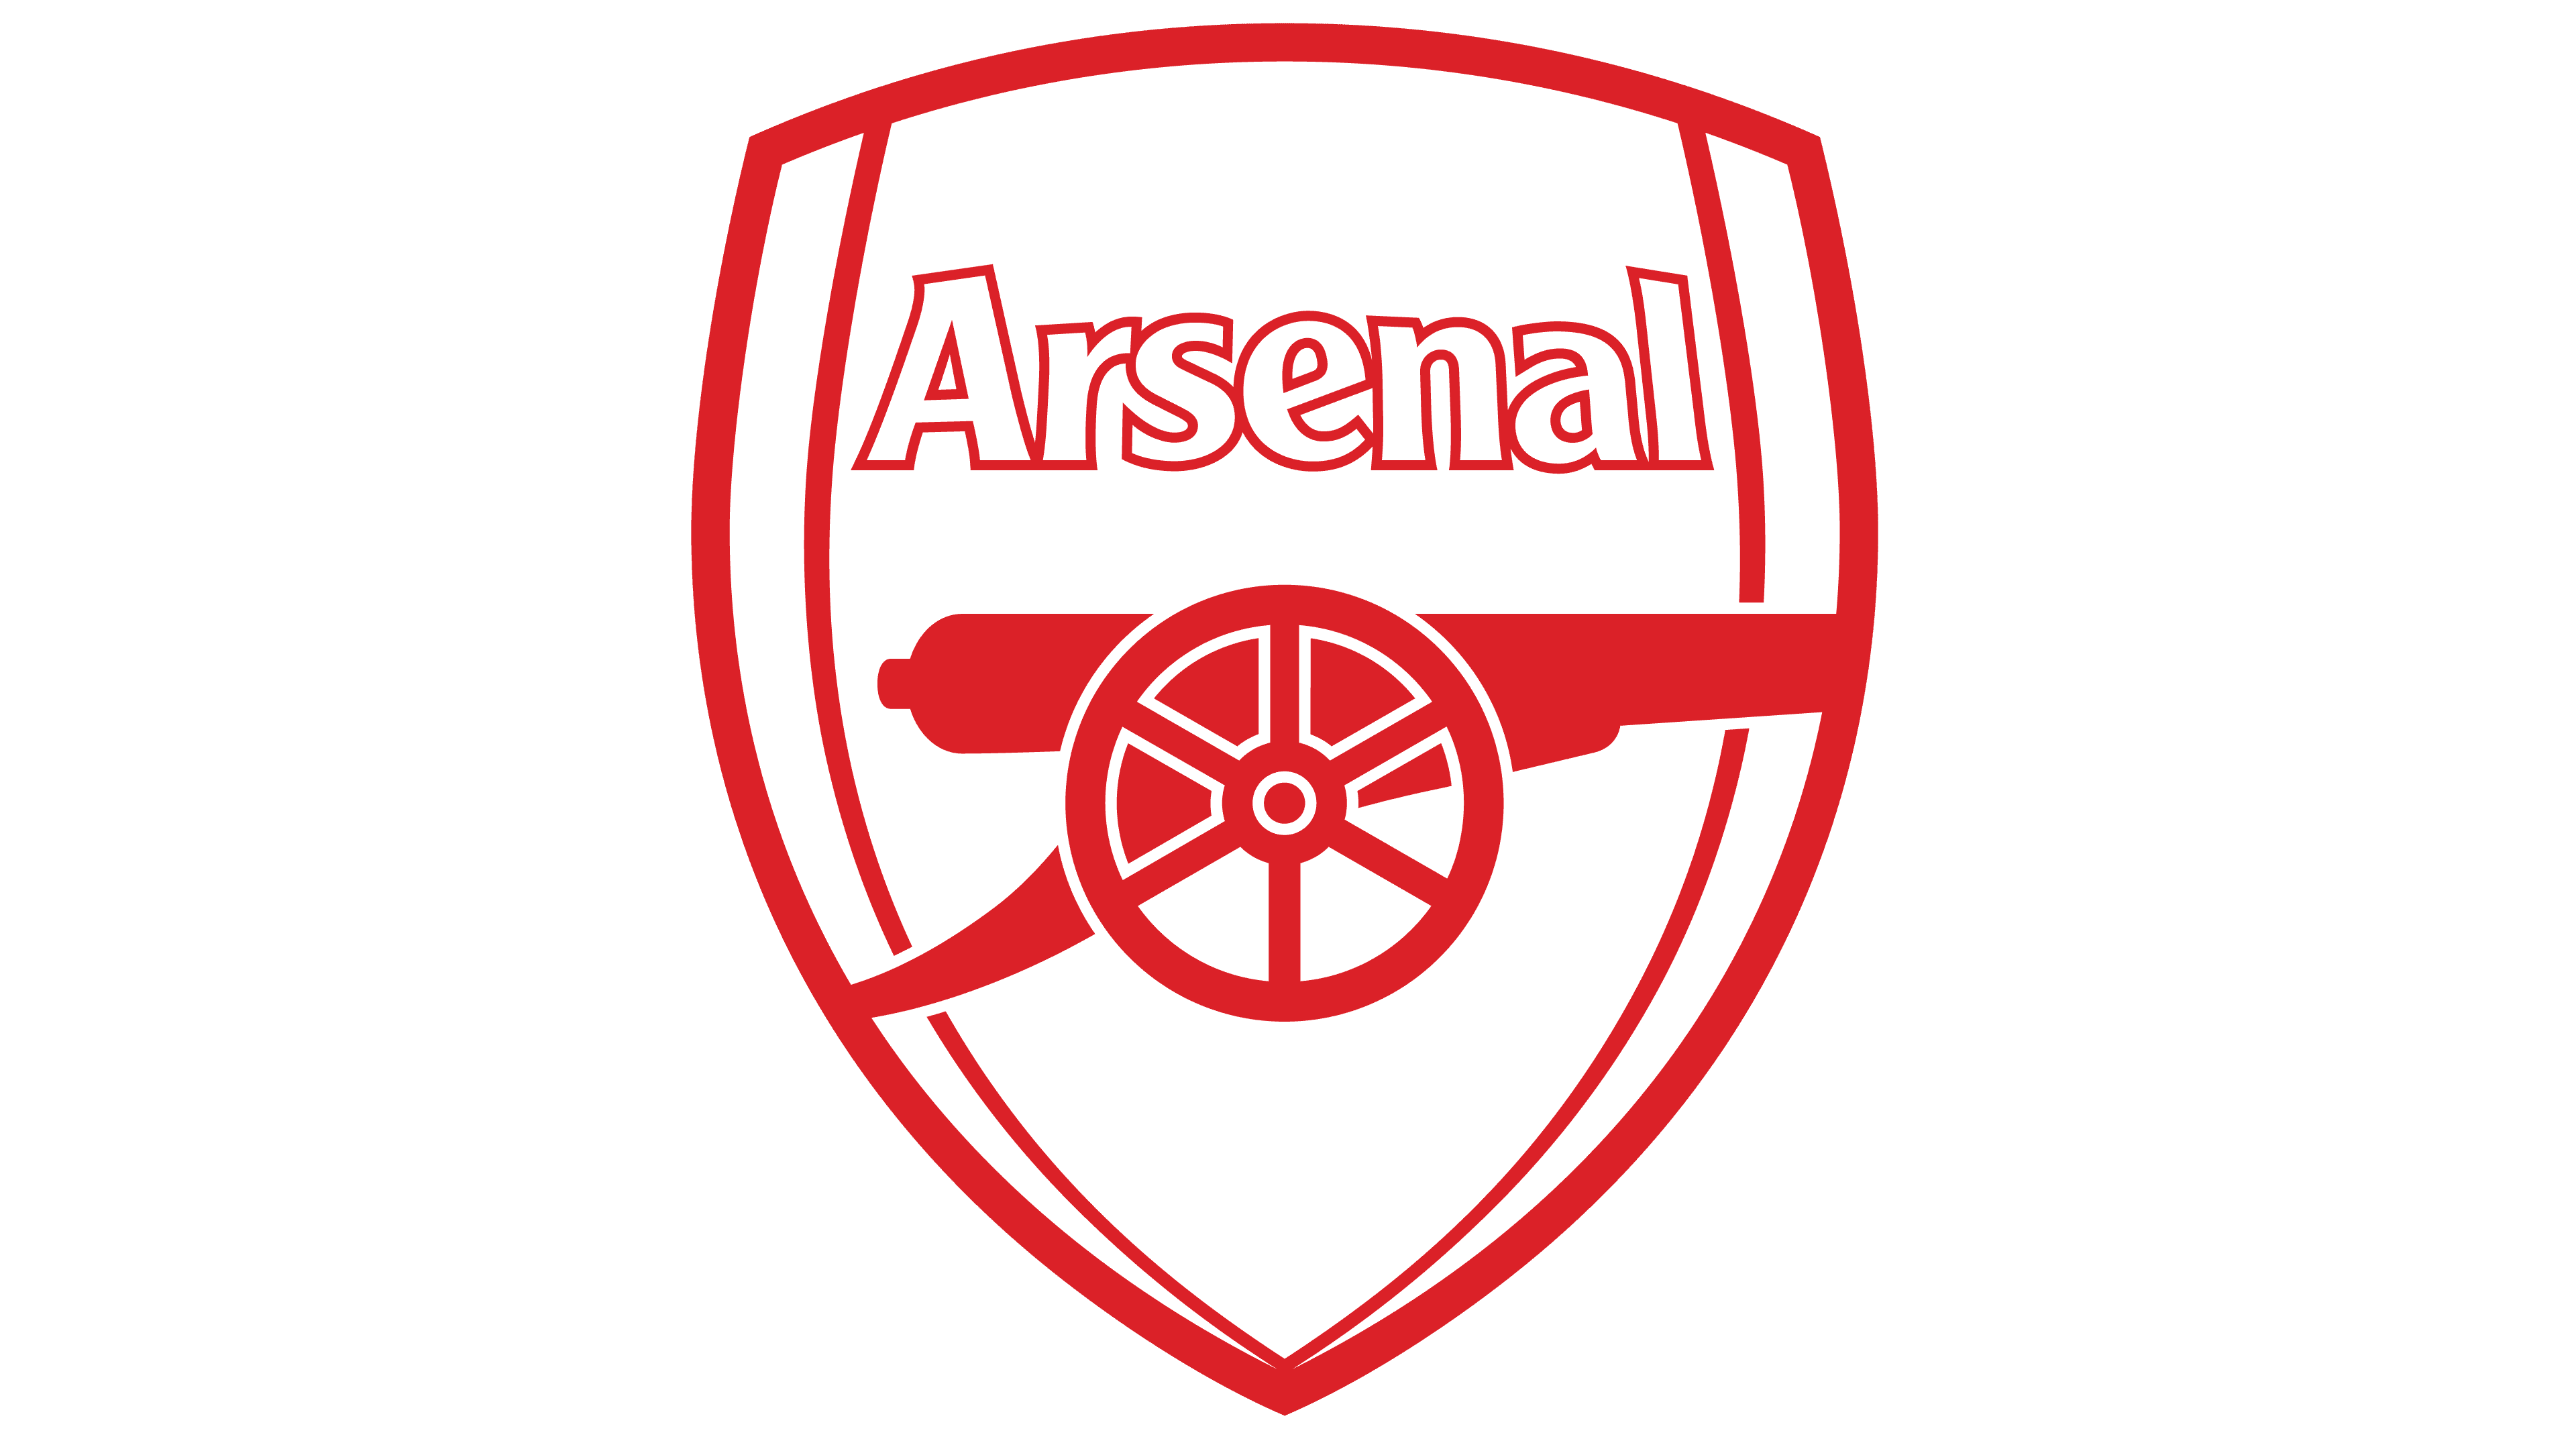 Arsenal Logo History The Most Famous Brands And Company Logos In The World